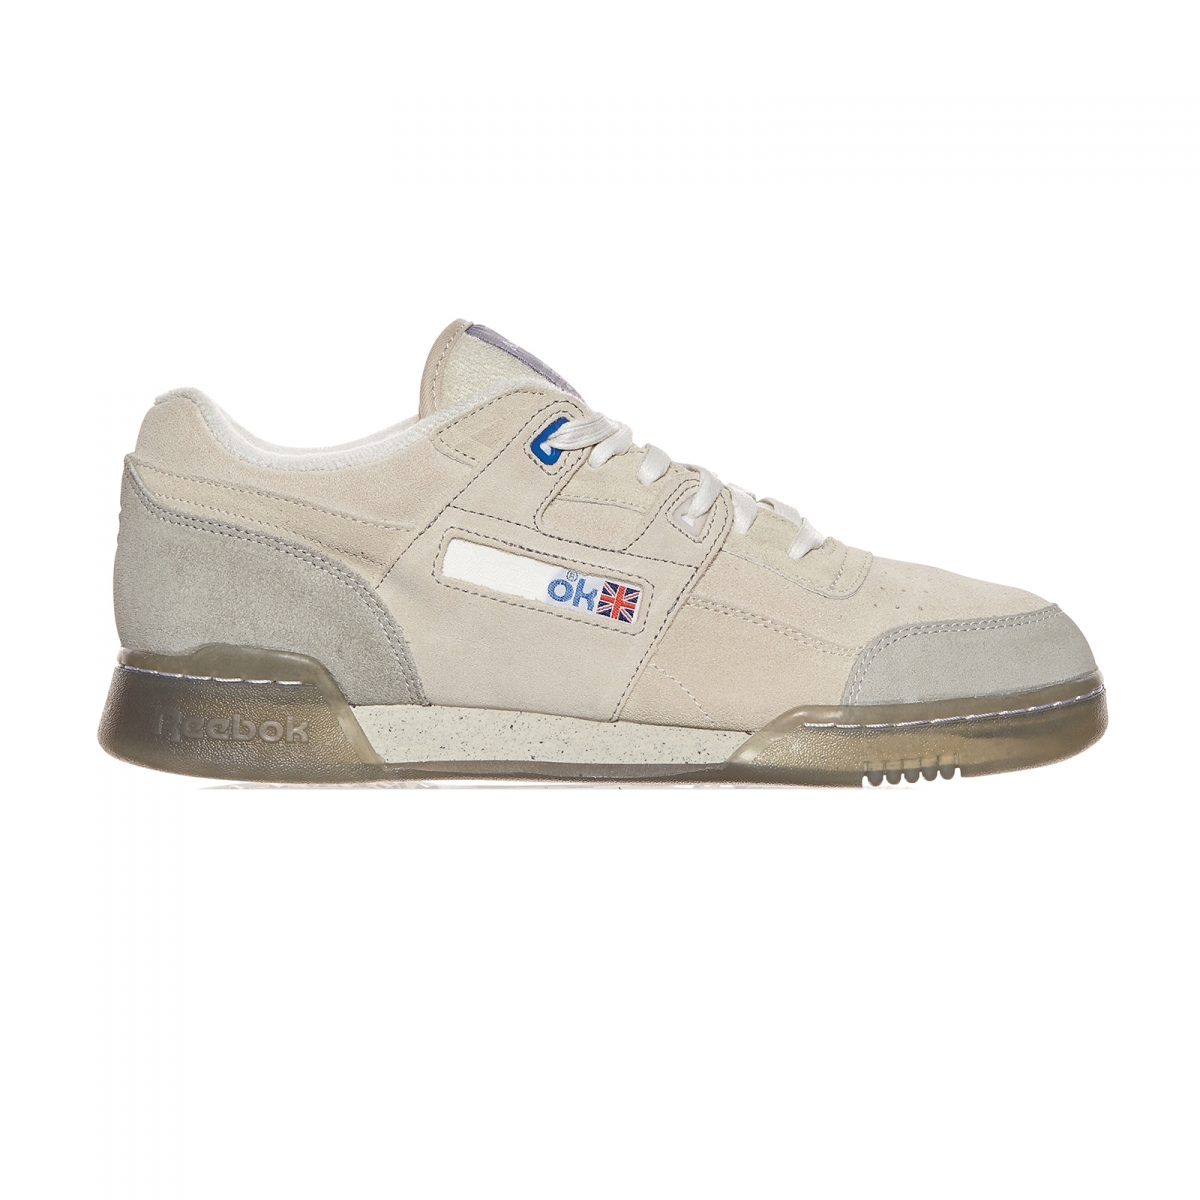 d5a6a94d99b Reebok Garbstore Workout Low Plus Sneakers In White For Men